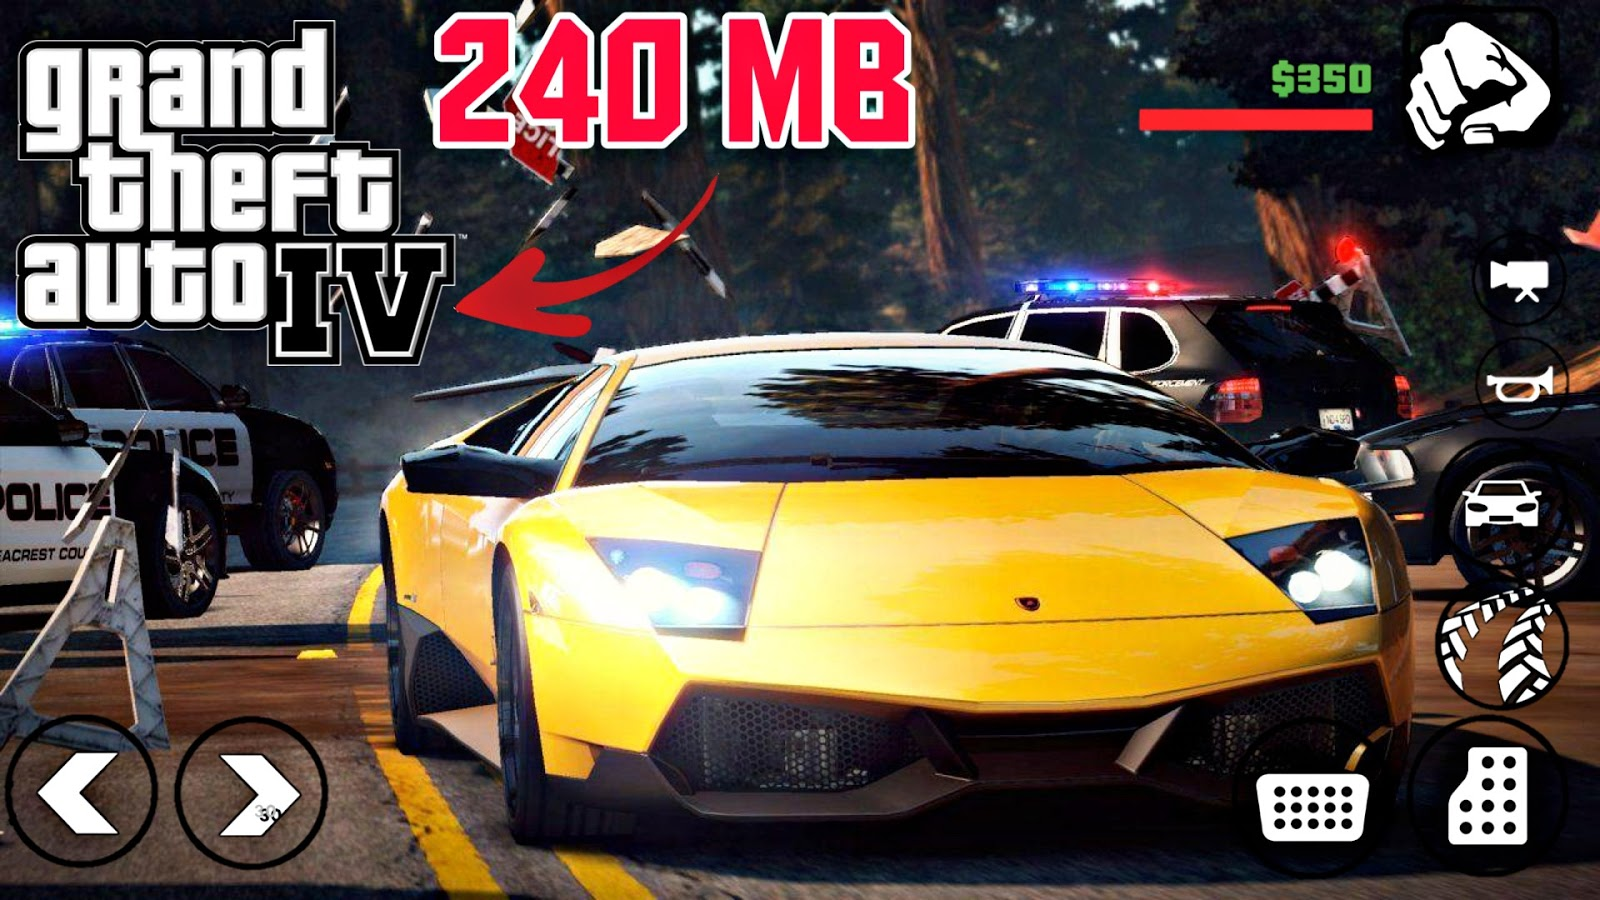 GTA 4 MOD PACK 250 MB ONLY - TECHNICAL EVER YT